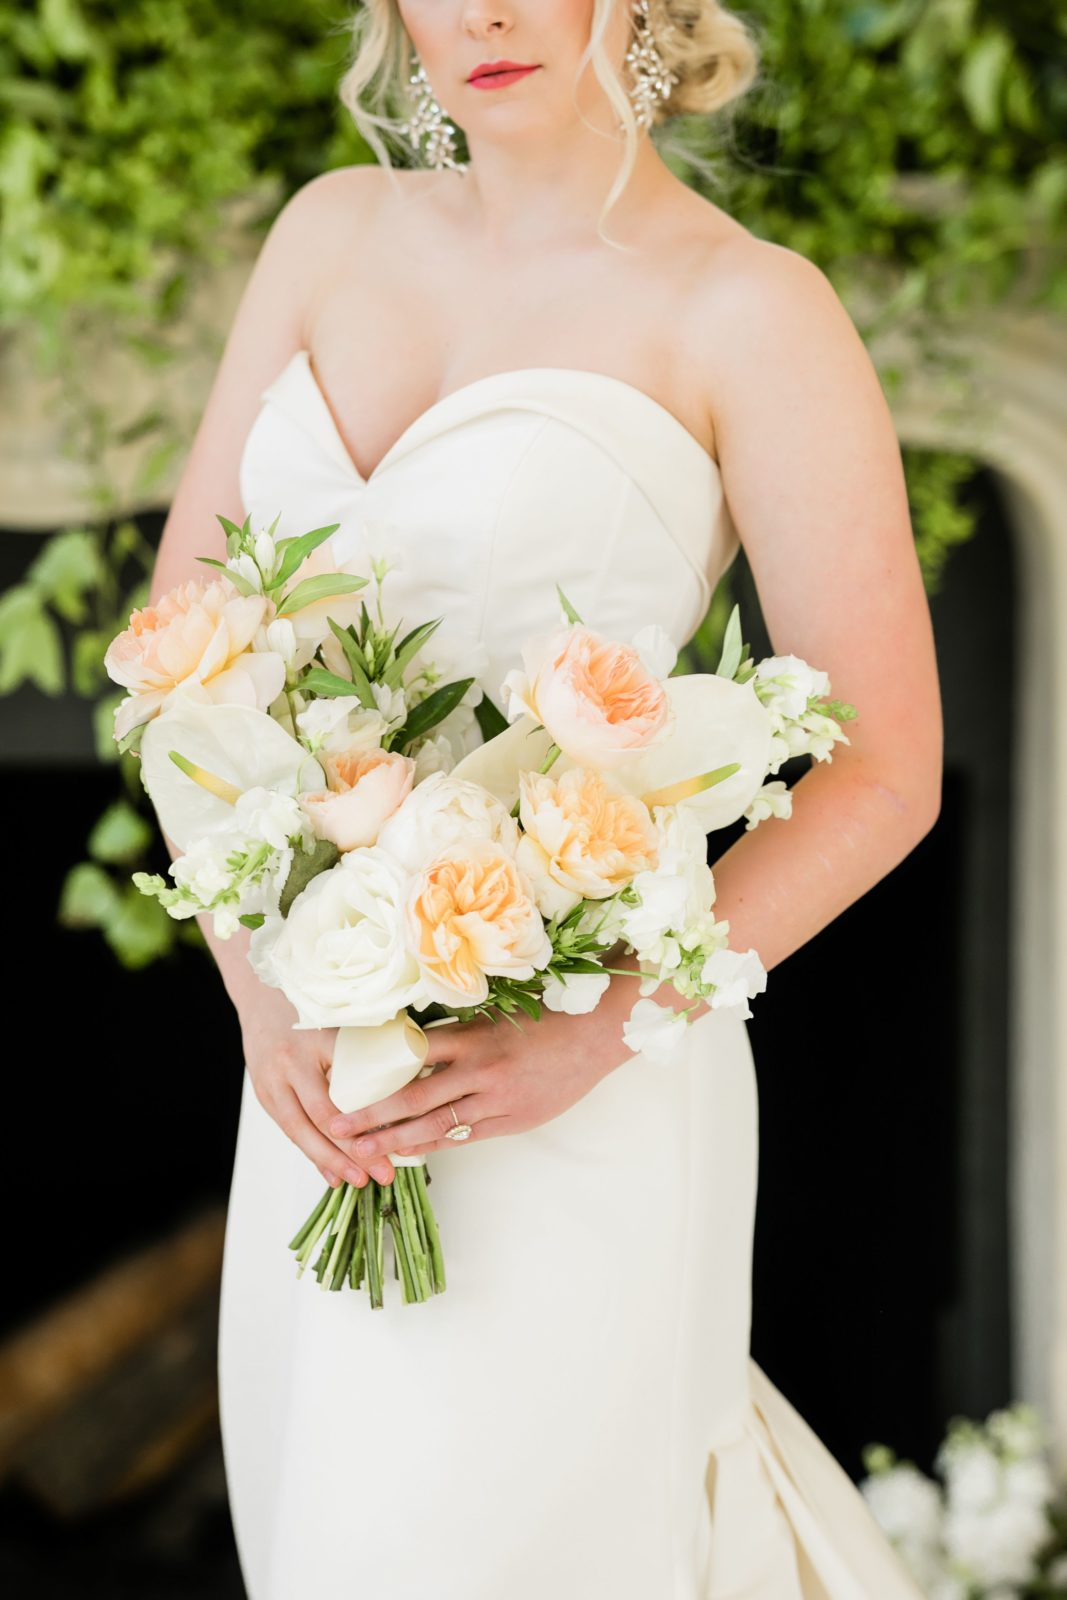 Luscious wedding bouquet: Sophisticated and Chic wedding inspiration on Alexa Kay Events